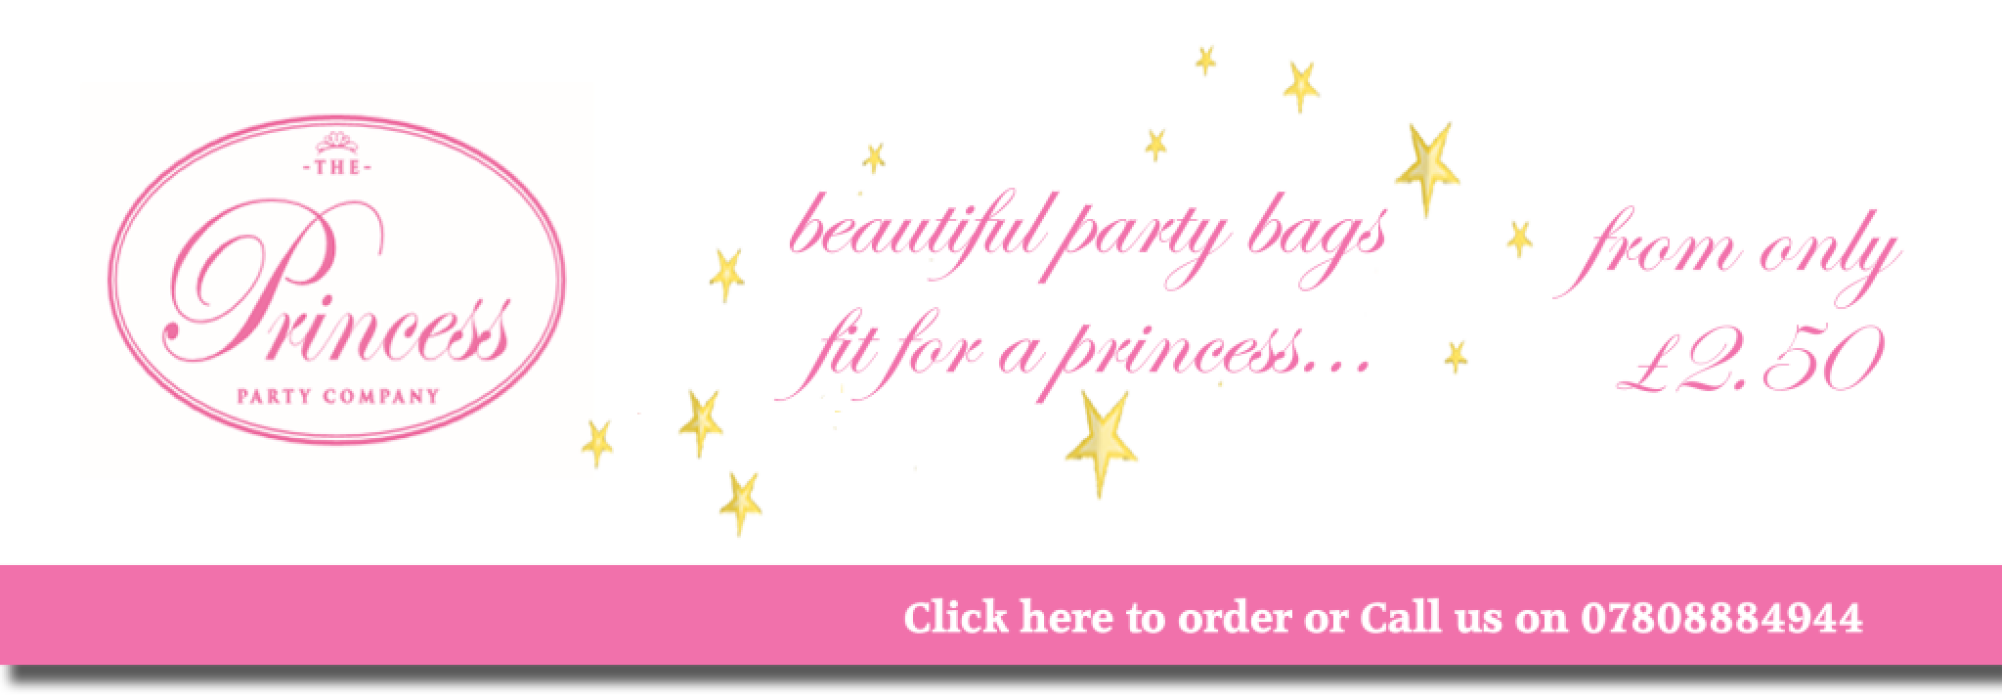 The Princess Party Co. Party Bags